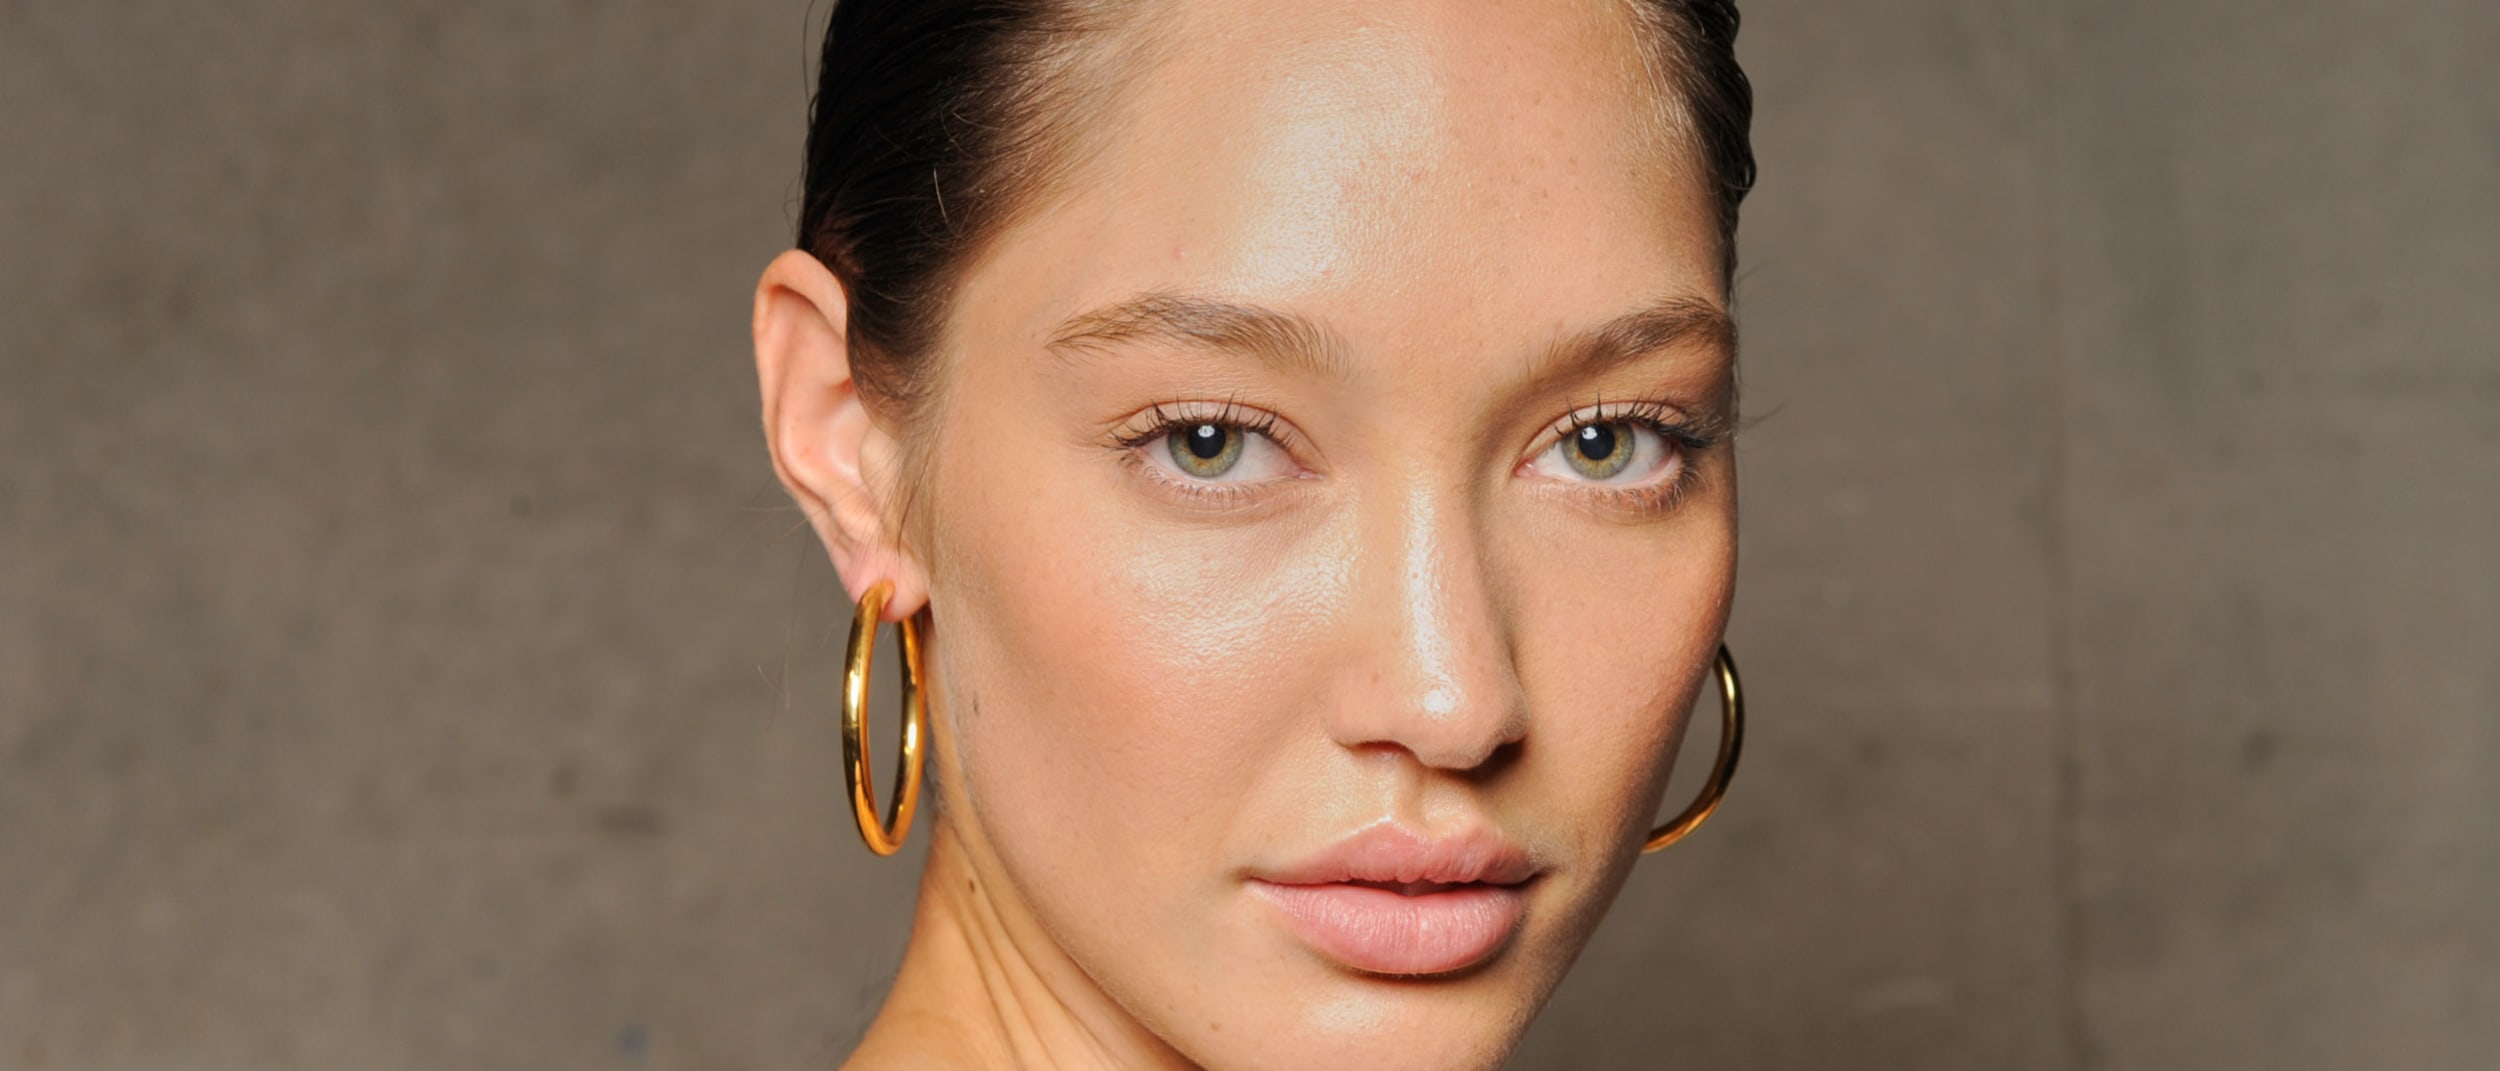 Pucker up: 4 game-changing steps for hydrated lips